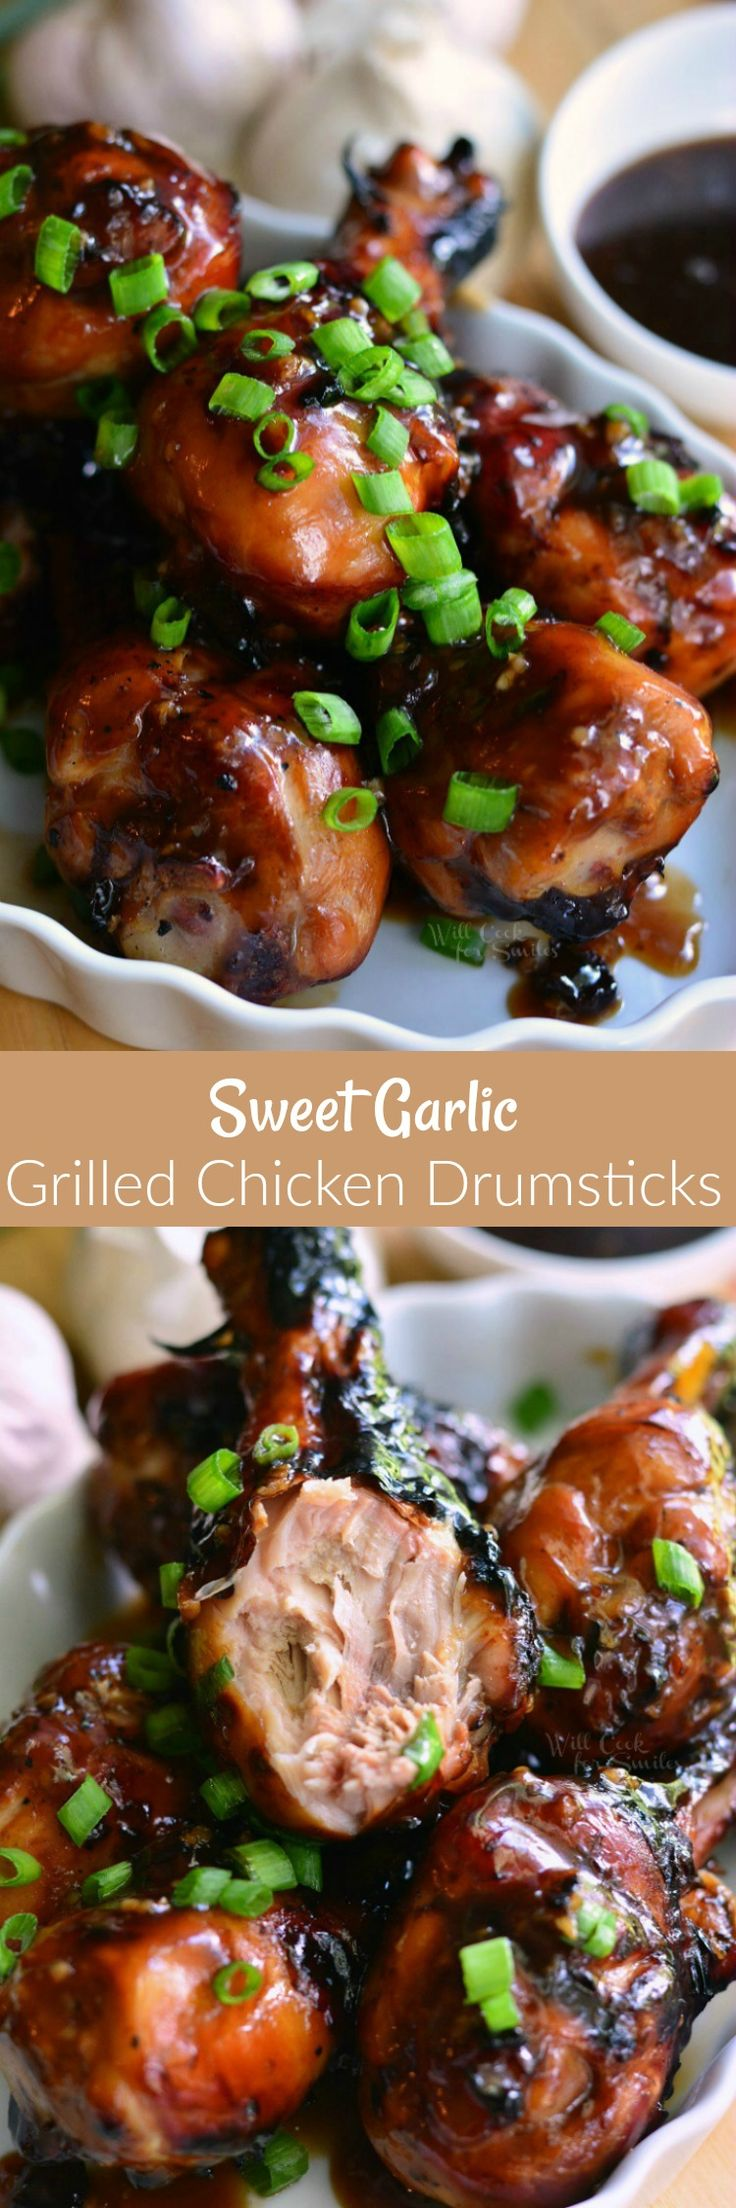 Sweet Garlic Grilled Chicken Drumsticks. Simple dinner, easily prepped ahead of time. Unbelievably delicious grilled chicken drumsticks marinated and then coated in a homemade sweet garlic sauce.